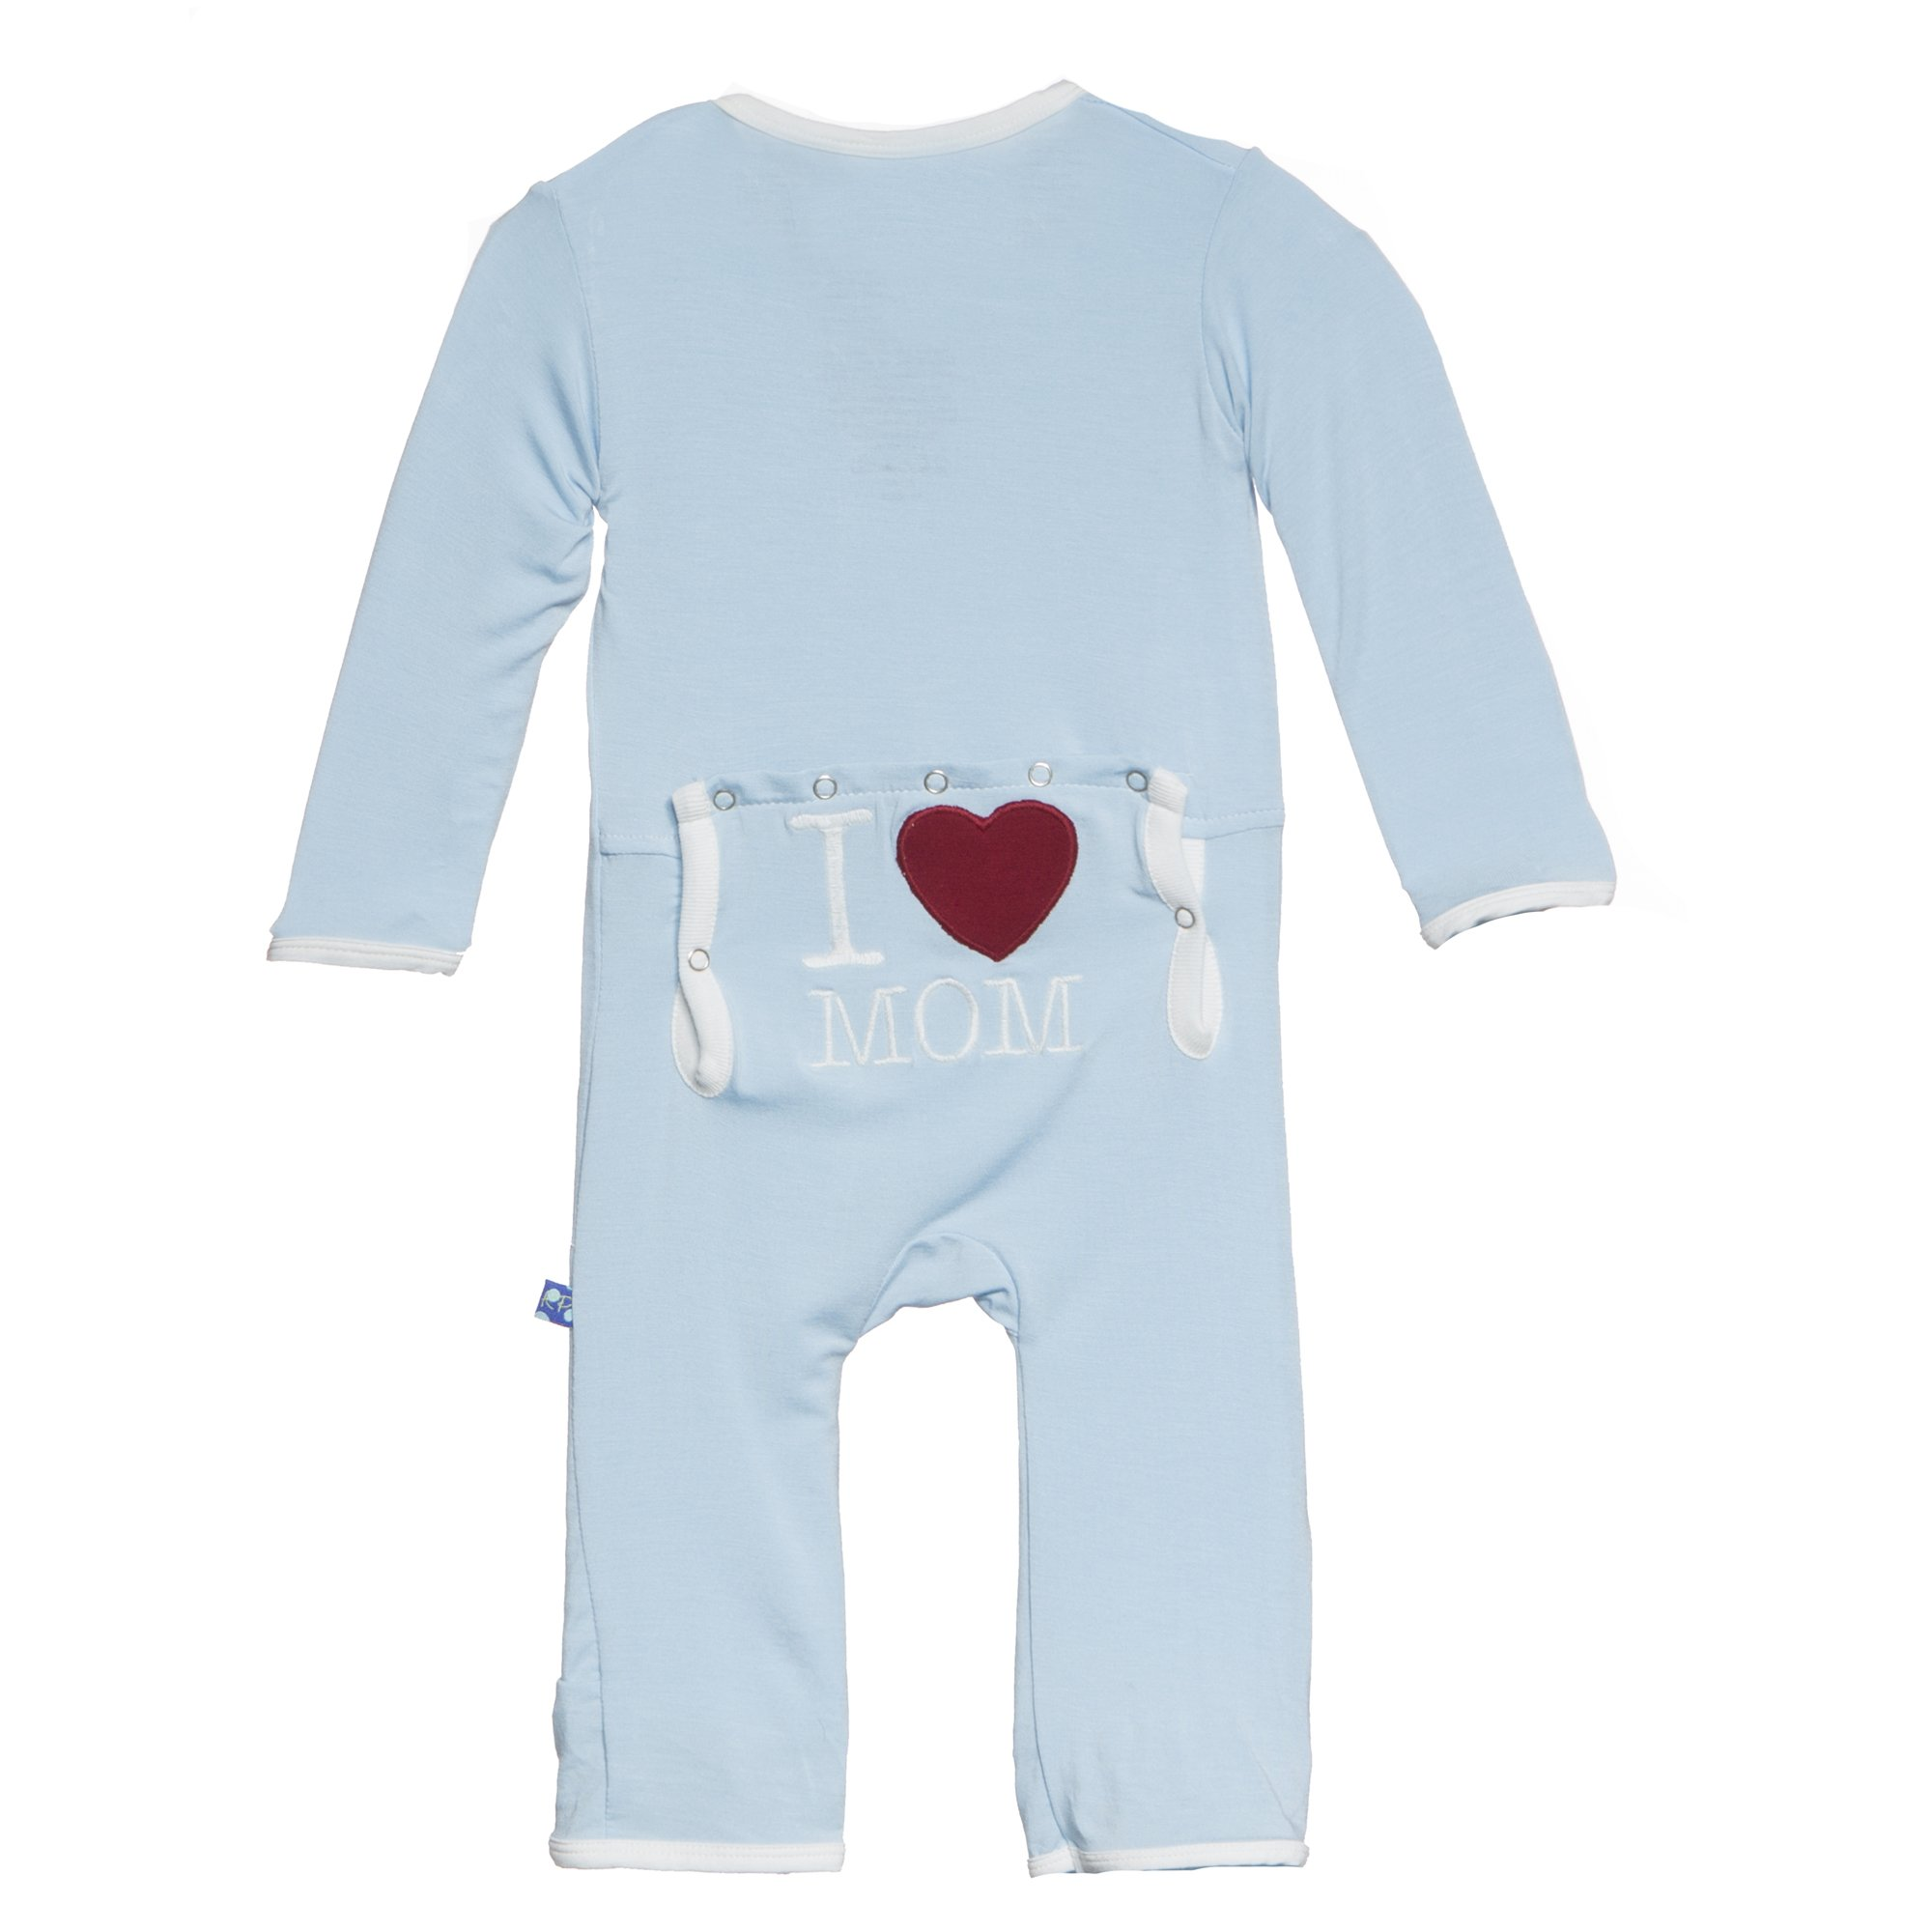 Kickee Pants Baby Boys' Fitted Applique Coverall in Pond I Love Mom, 0-3M